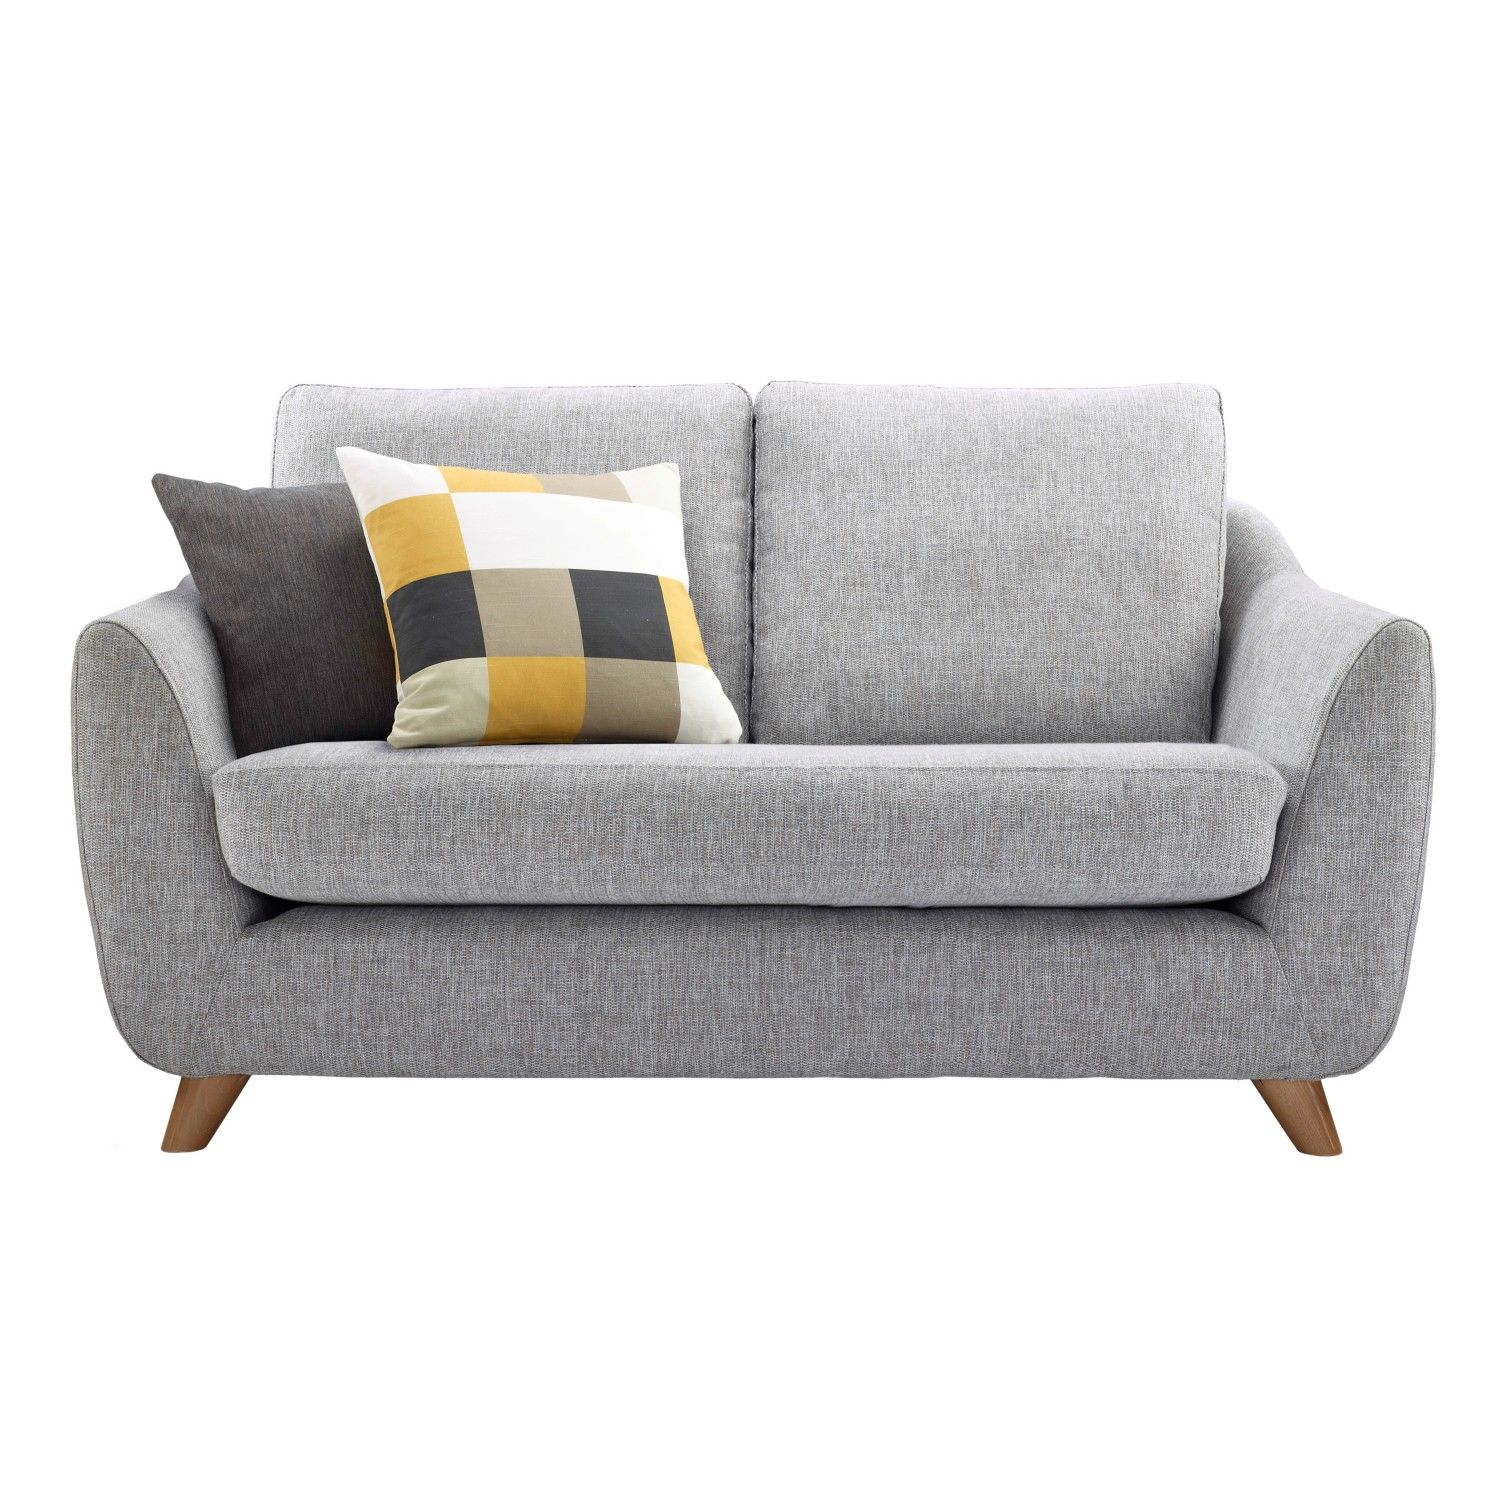 Beau Loveseats For Small Spaces | Cheap Small Sofa Decoration : Fascinating Grey  Legged Cheap Small Sofa .